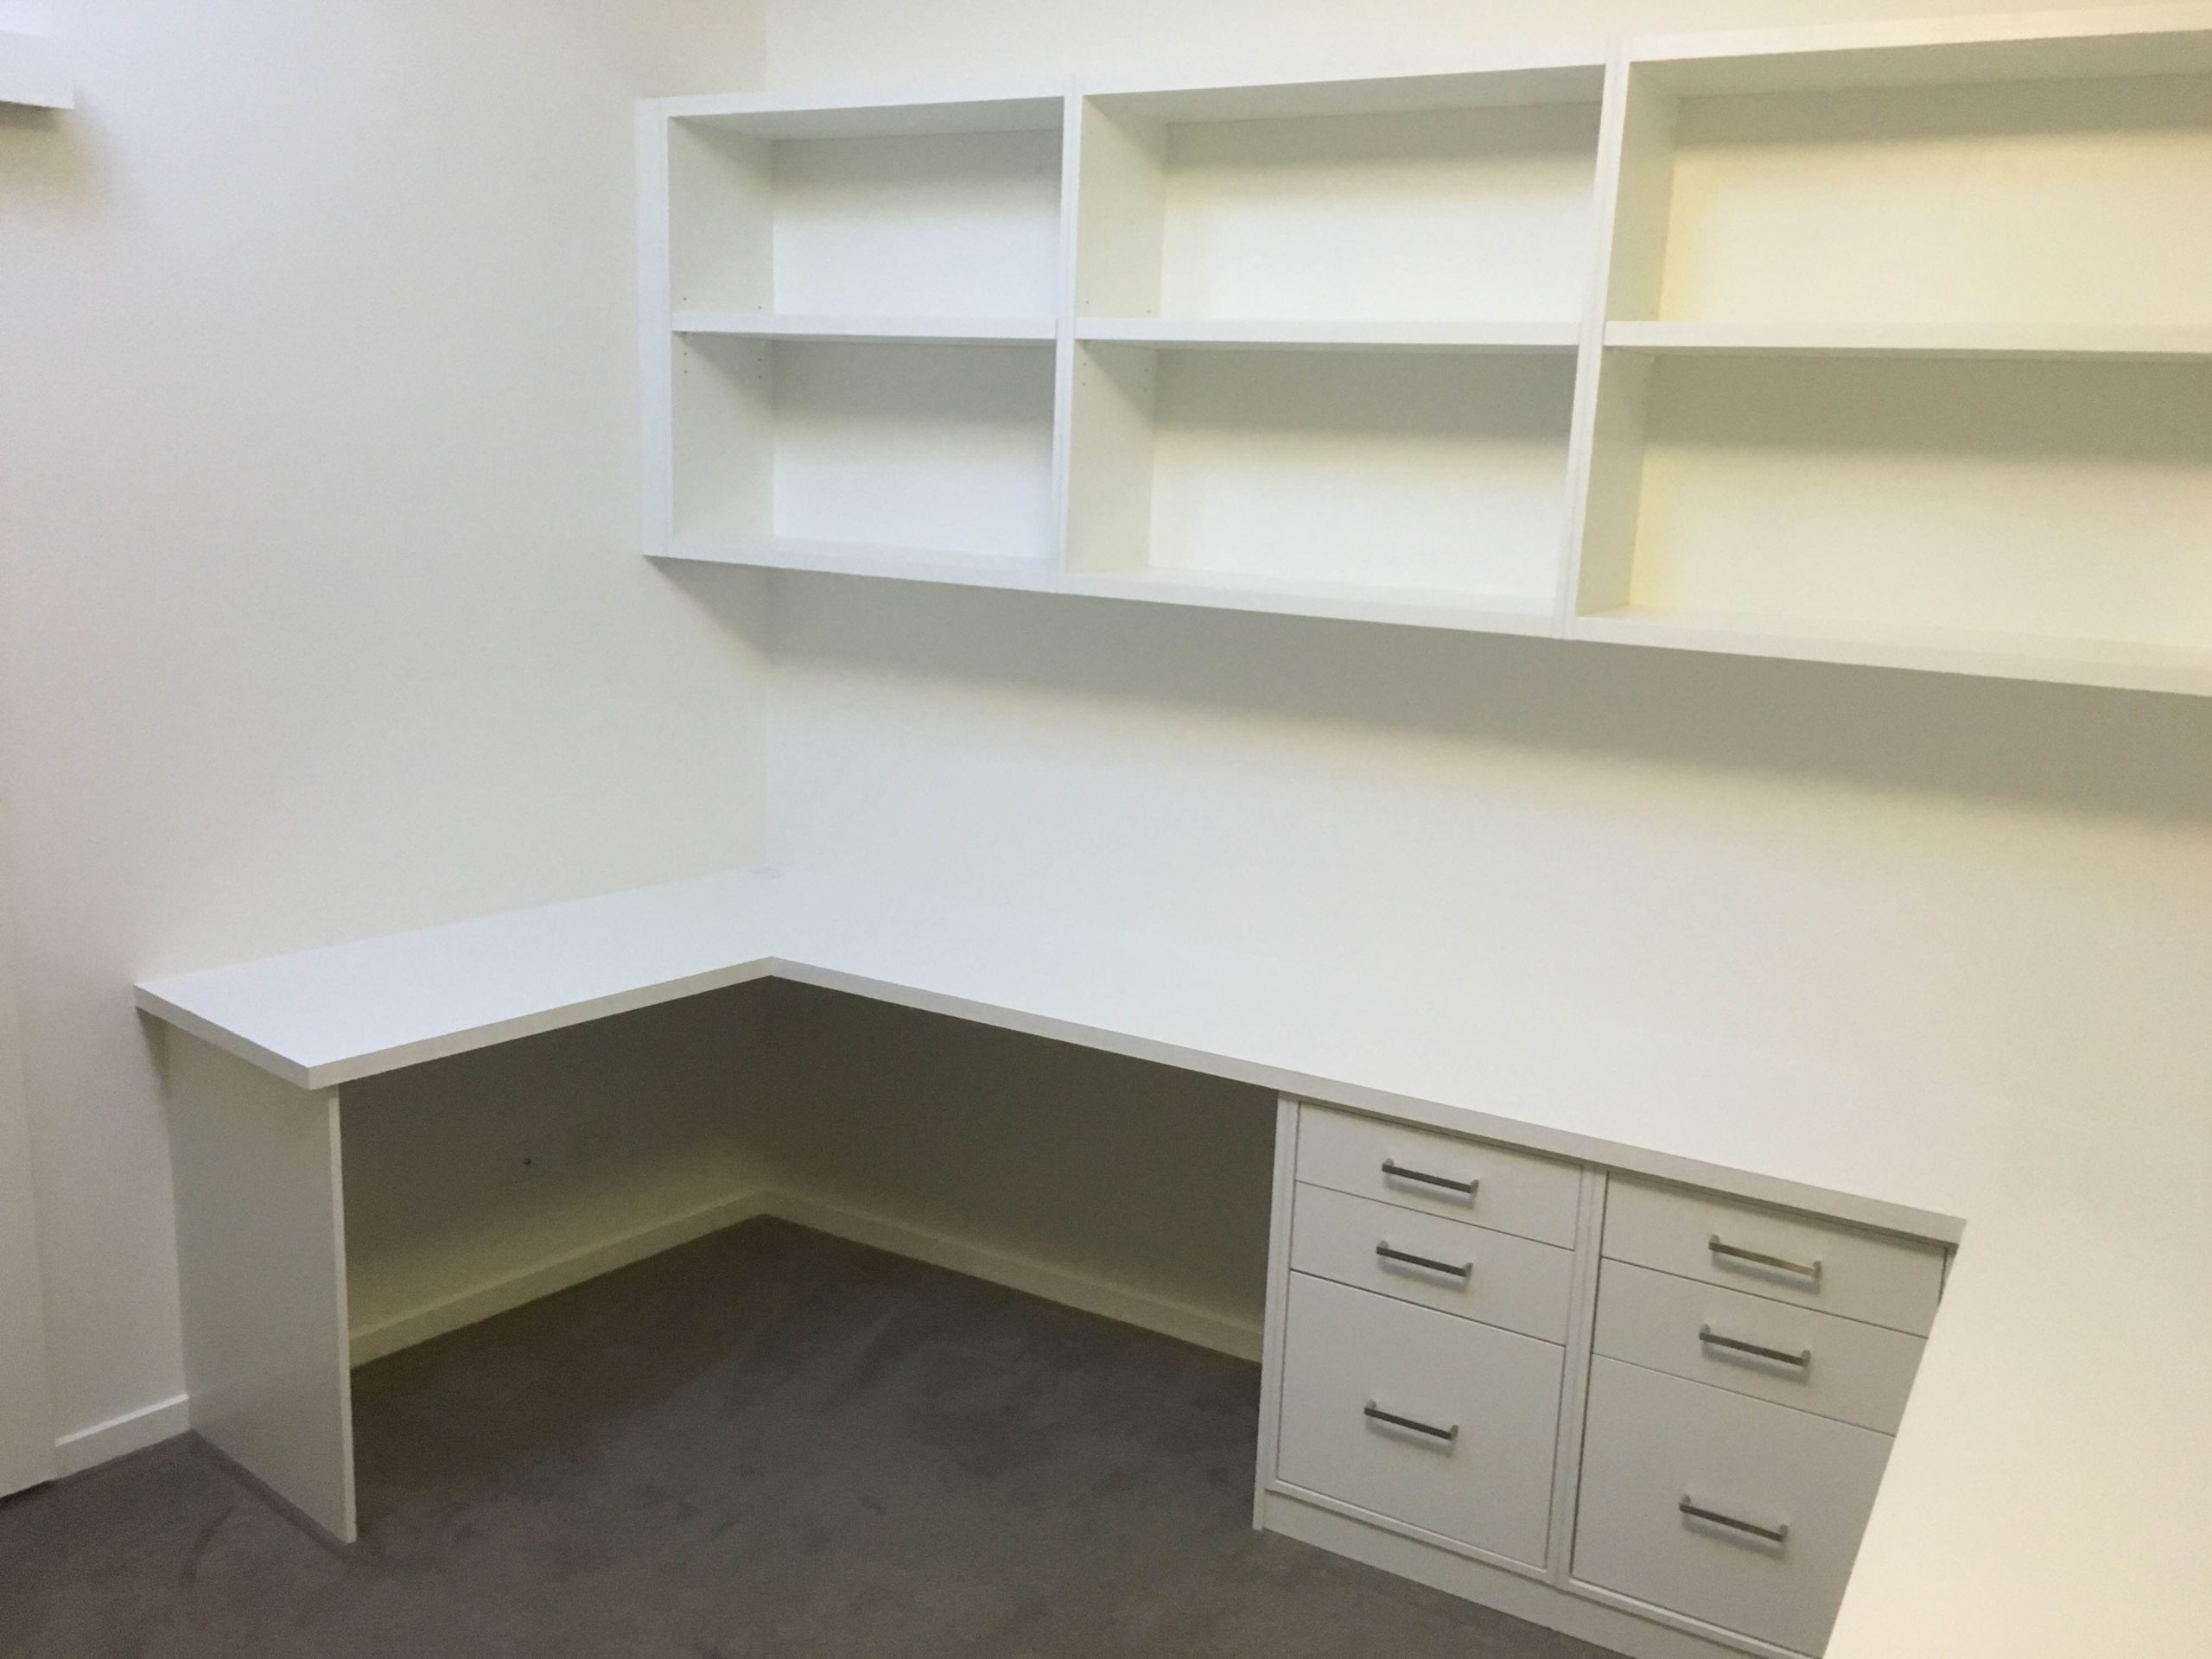 study area with desk, drawers and shelves